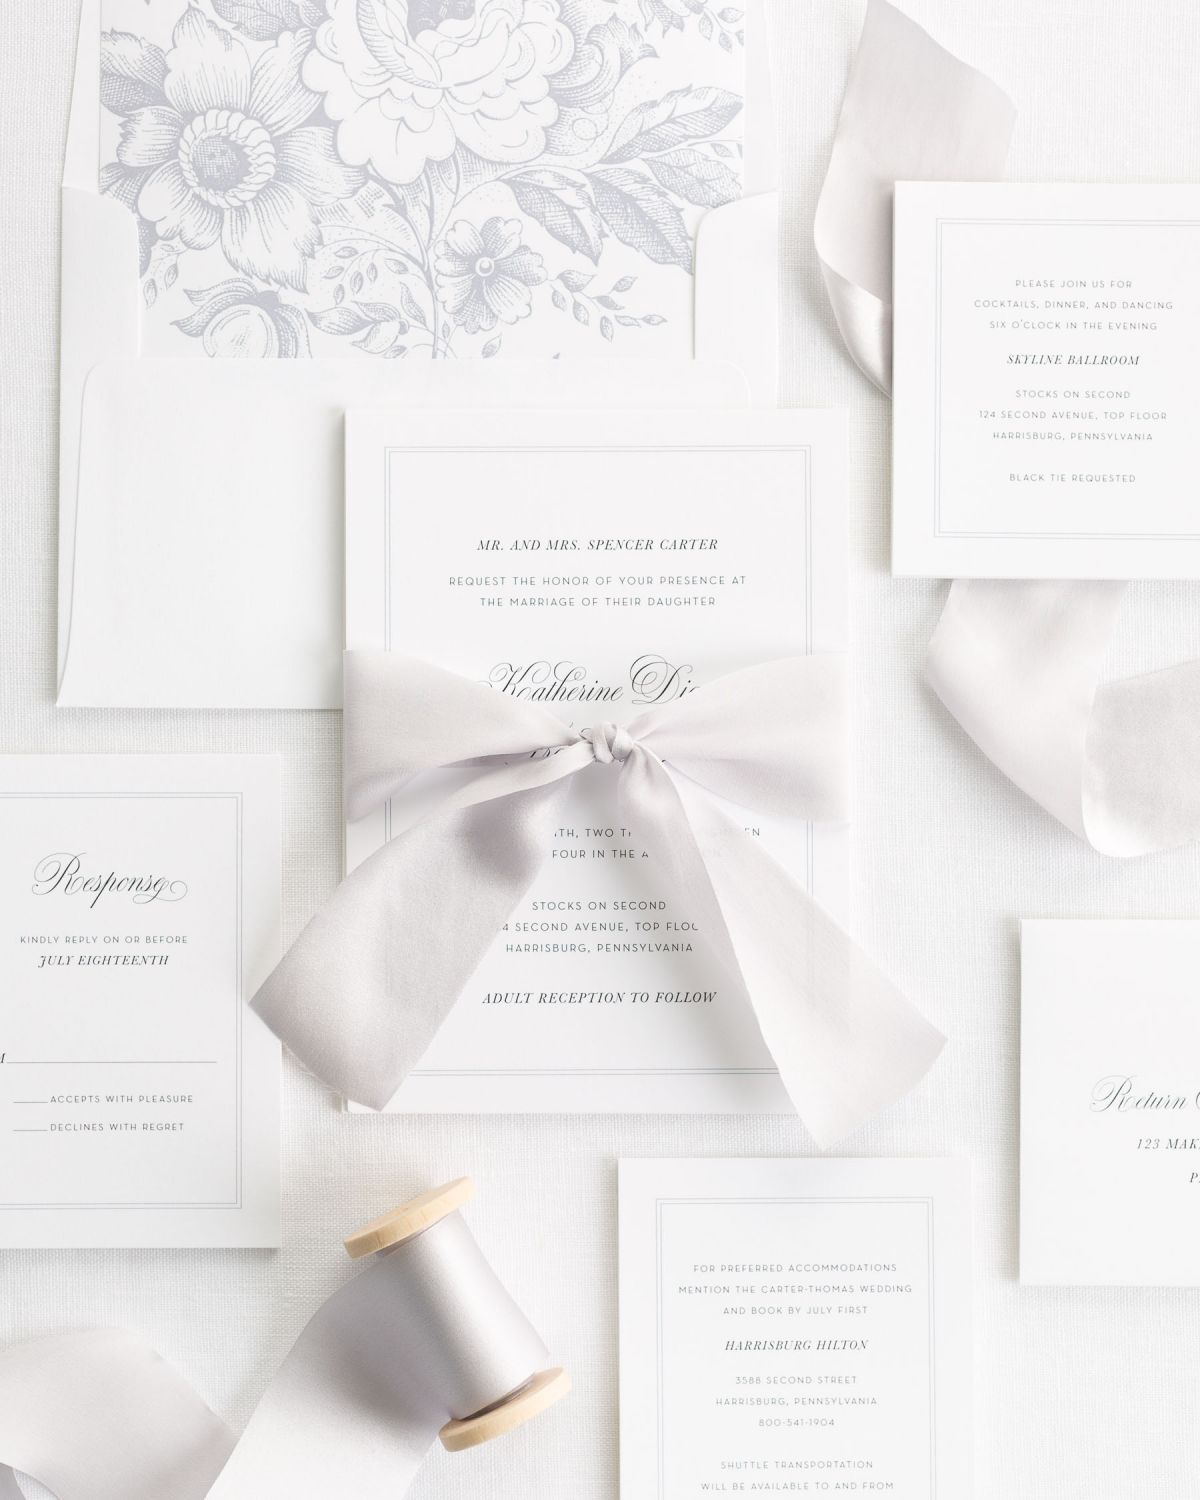 Classic Silk Ribbon Wedding Invitations in platinum gray